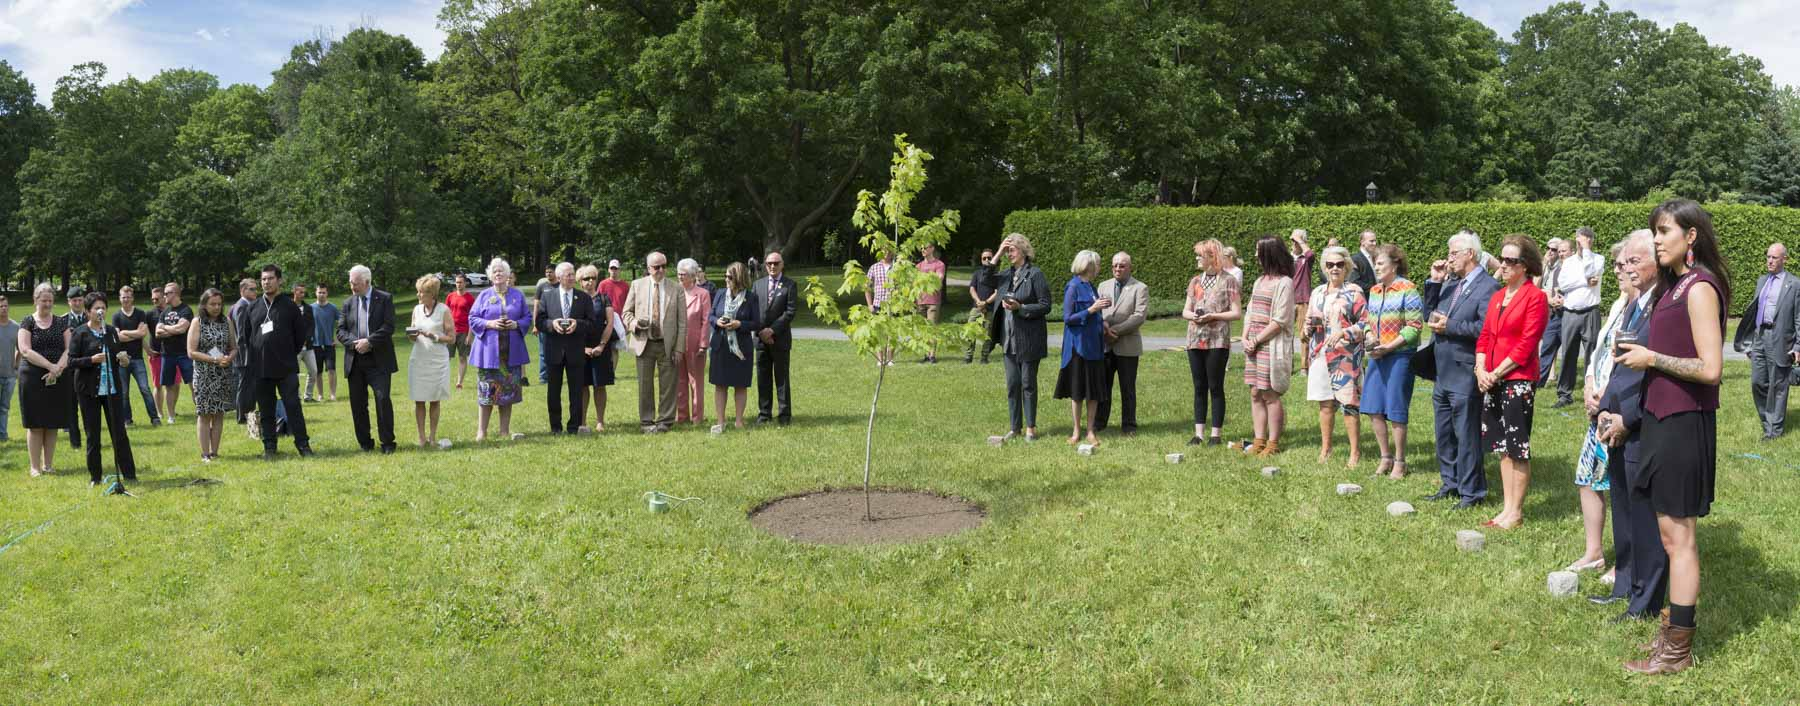 As part of the 2017 Annual Conference of the Governor General, Lieutenant Governors and Territorial Commissioners at Rideau Hall, Their Excellencies the Right Honourable David Johnston, Governor General of Canada, and Mrs. Sharon Johnston, joined by their viceregal colleagues, marked the 150th anniversary of Confederation with the planting of the Regal Celebration Maple tree on the grounds on June 20, 2017.